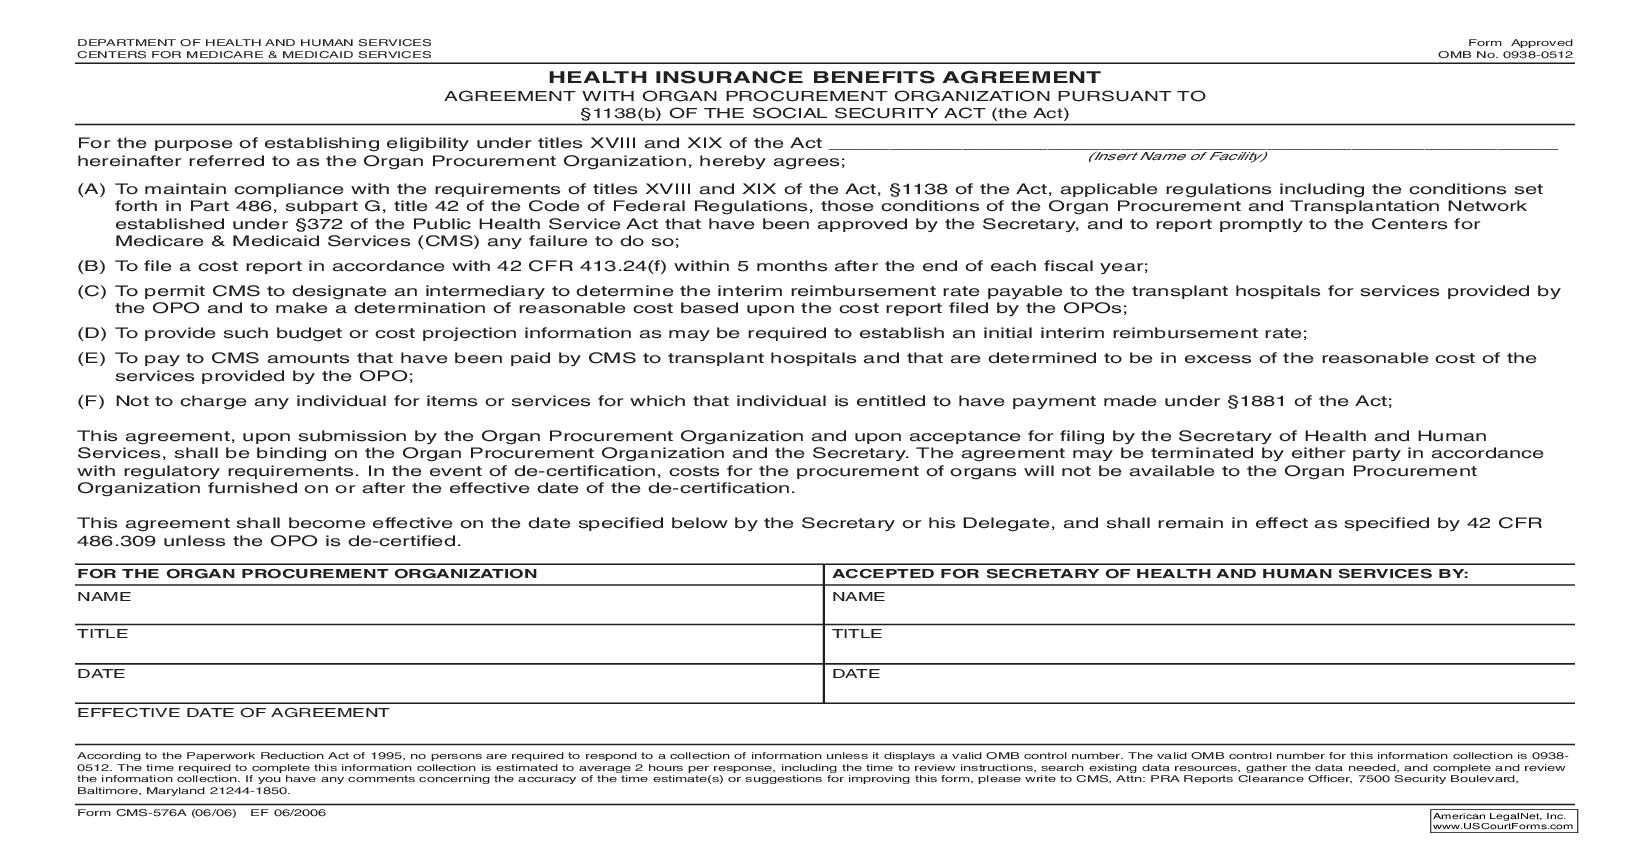 Health Insurance Benefits Agreement With Organ Procurement Organization Pusuant To 1138(b) {CMS-576A} | Pdf Fpdf Doc Docx | Official Federal Forms